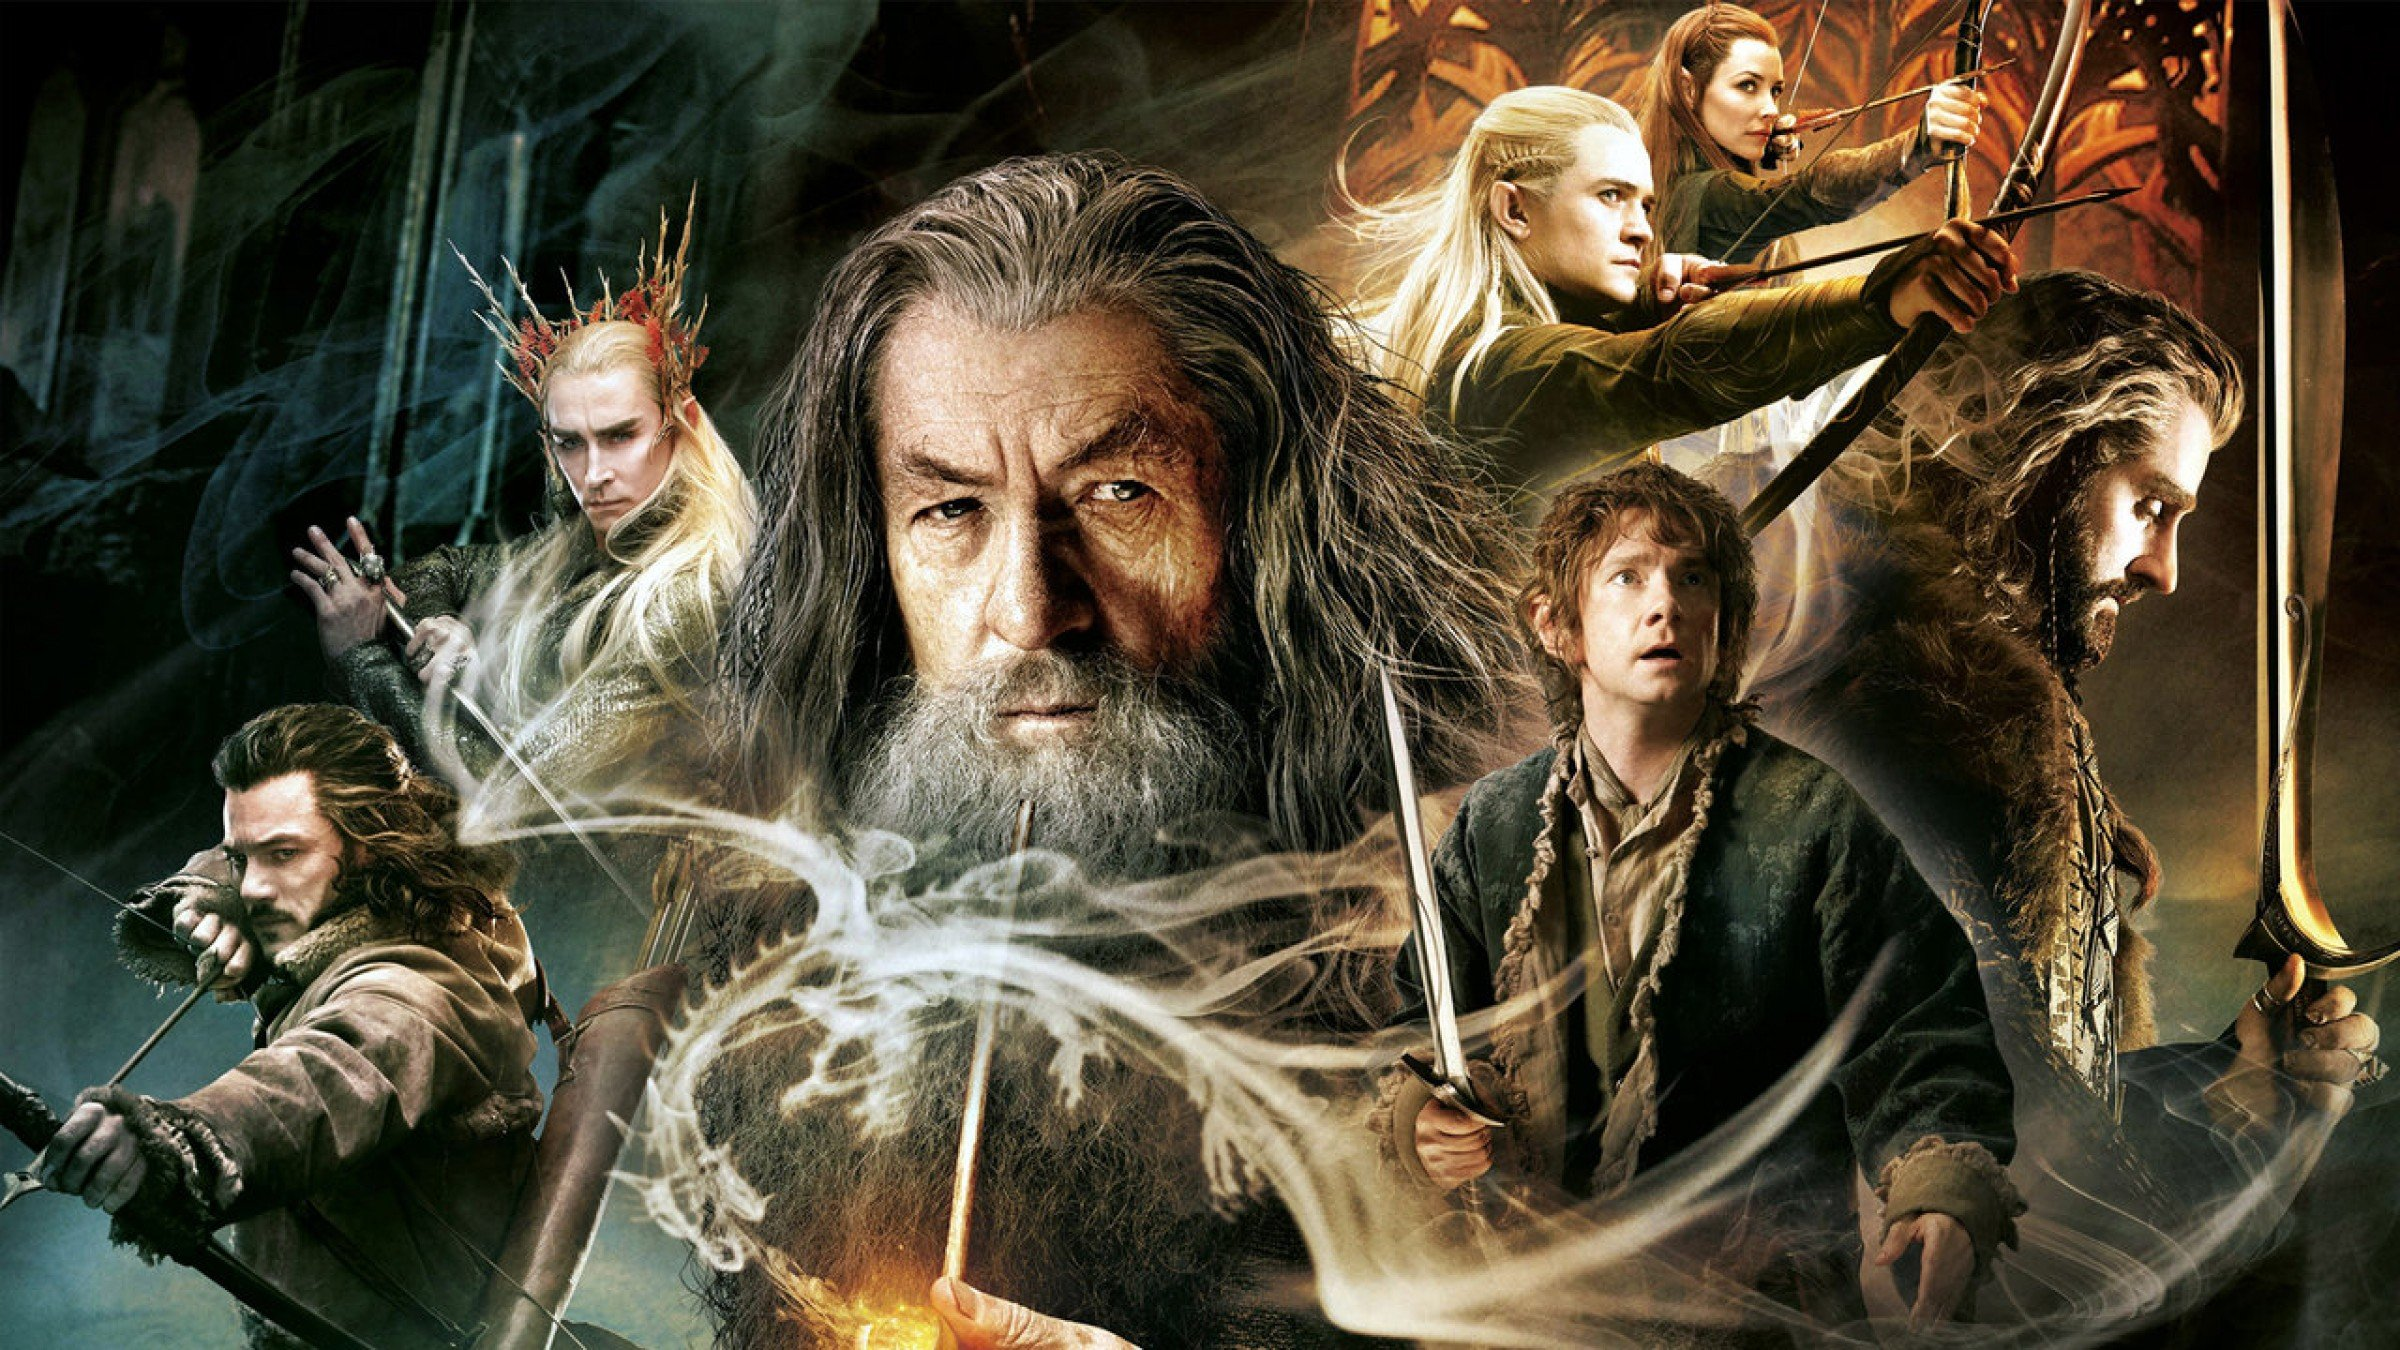 Go Behind the Scenes with the Sound Team from 'The Hobbit: The Desolation of Smaug'